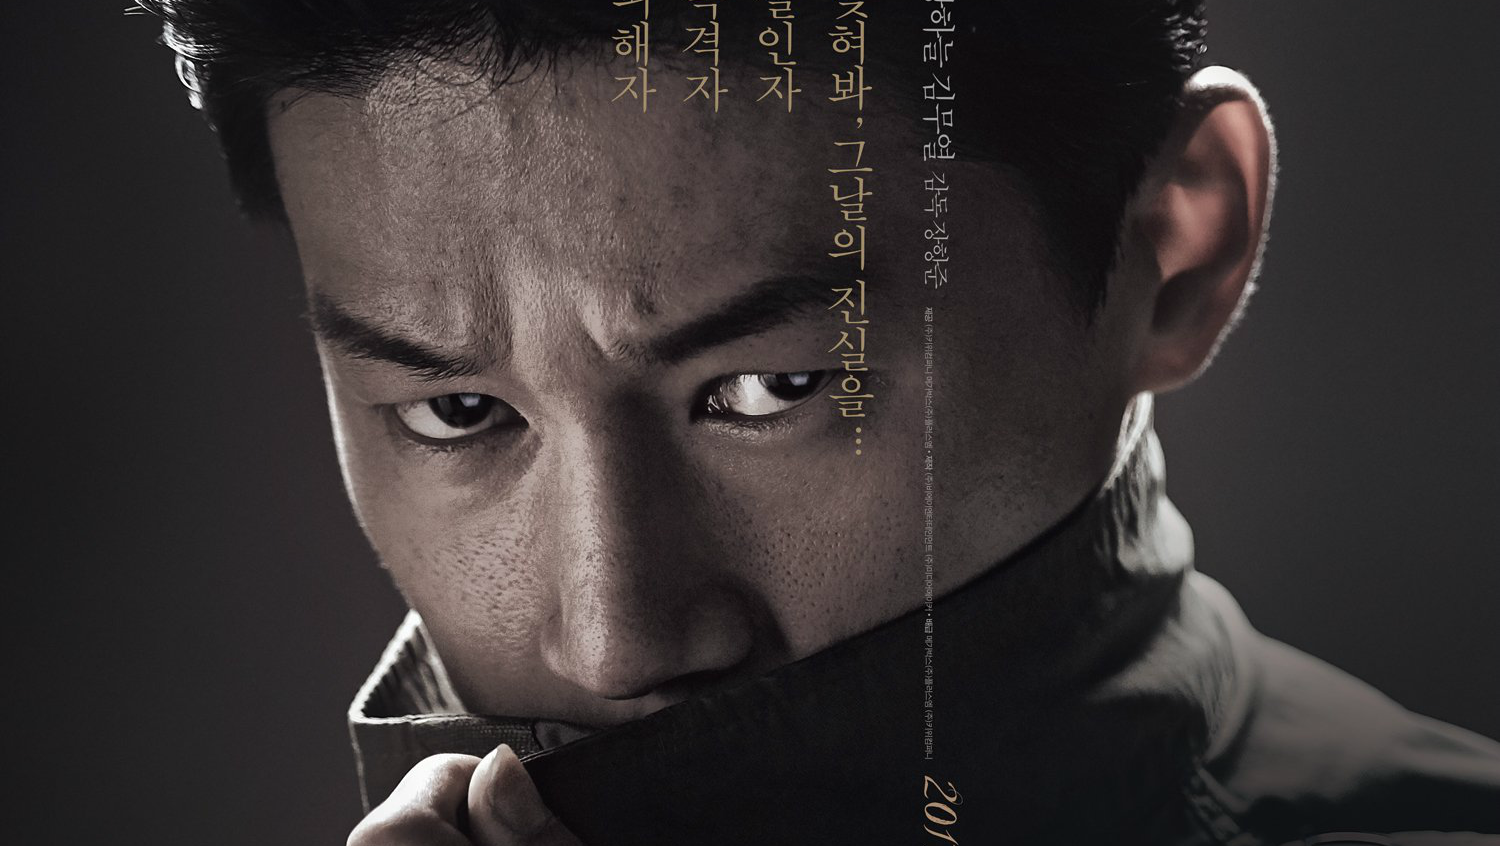 The movie poster for the Korean thriller 'Forgotten' on Neflix